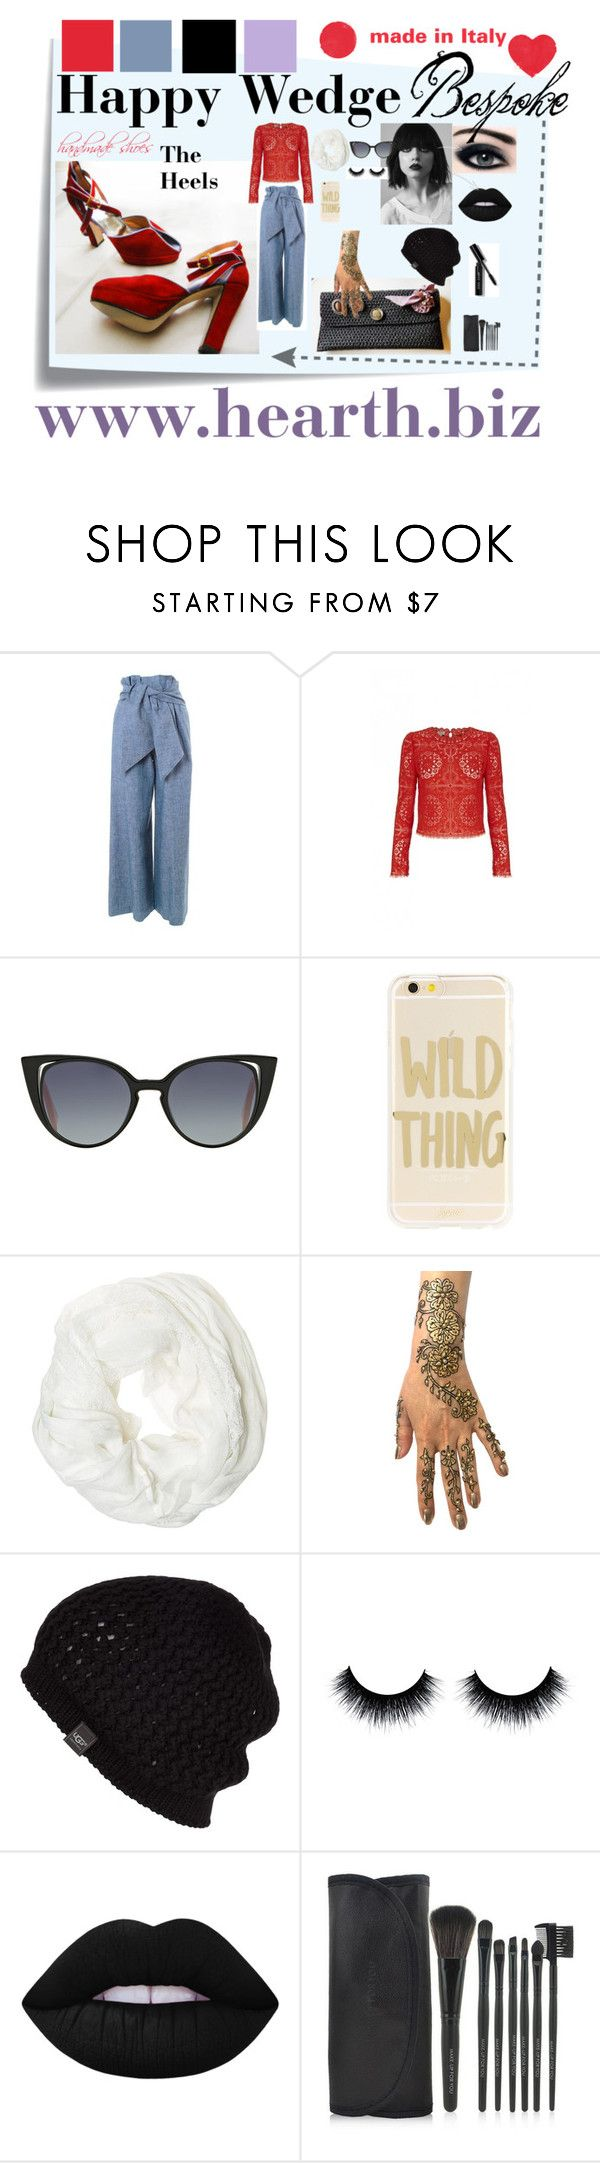 """The Happy Wedge"" by hearthfashion on Polyvore featuring moda, Post-It, MSGM, Temperley London, Fendi, Sonix, Betsey Johnson, UGG Australia, Lime Crime e Bobbi Brown Cosmetics"